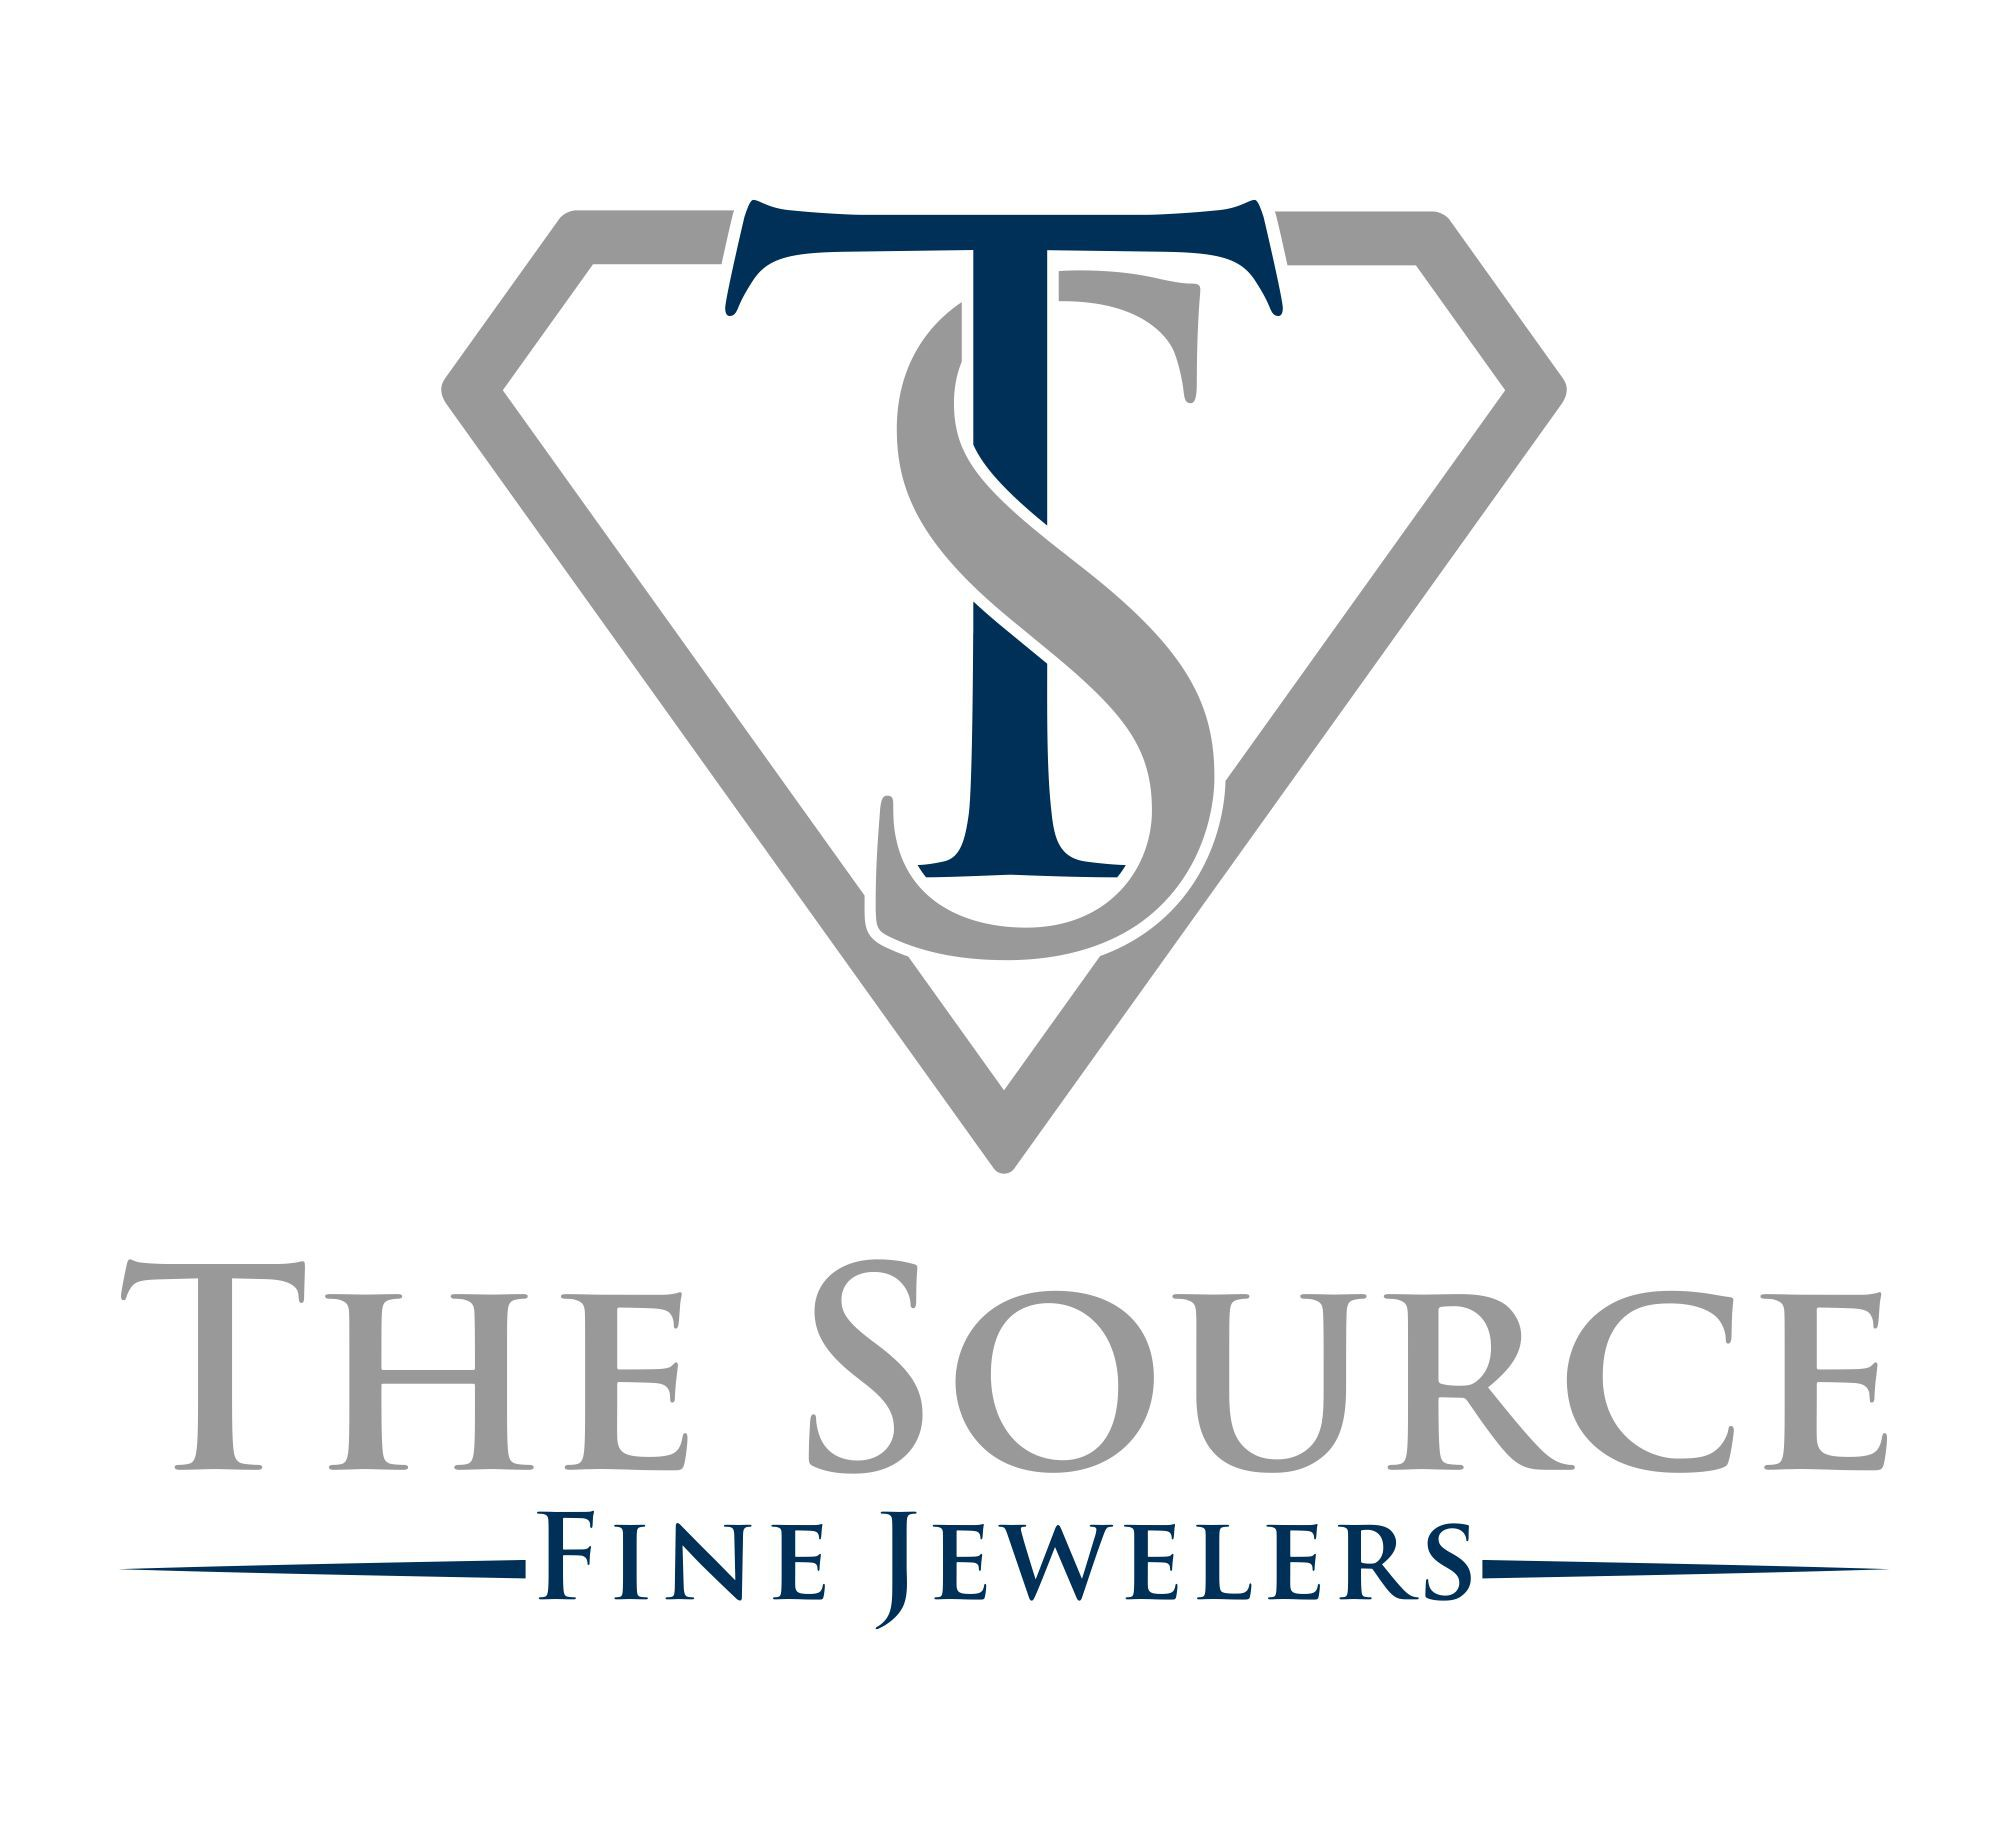 Create a logo that is fresh but will stand the test of time for The Source Fine Jewelers